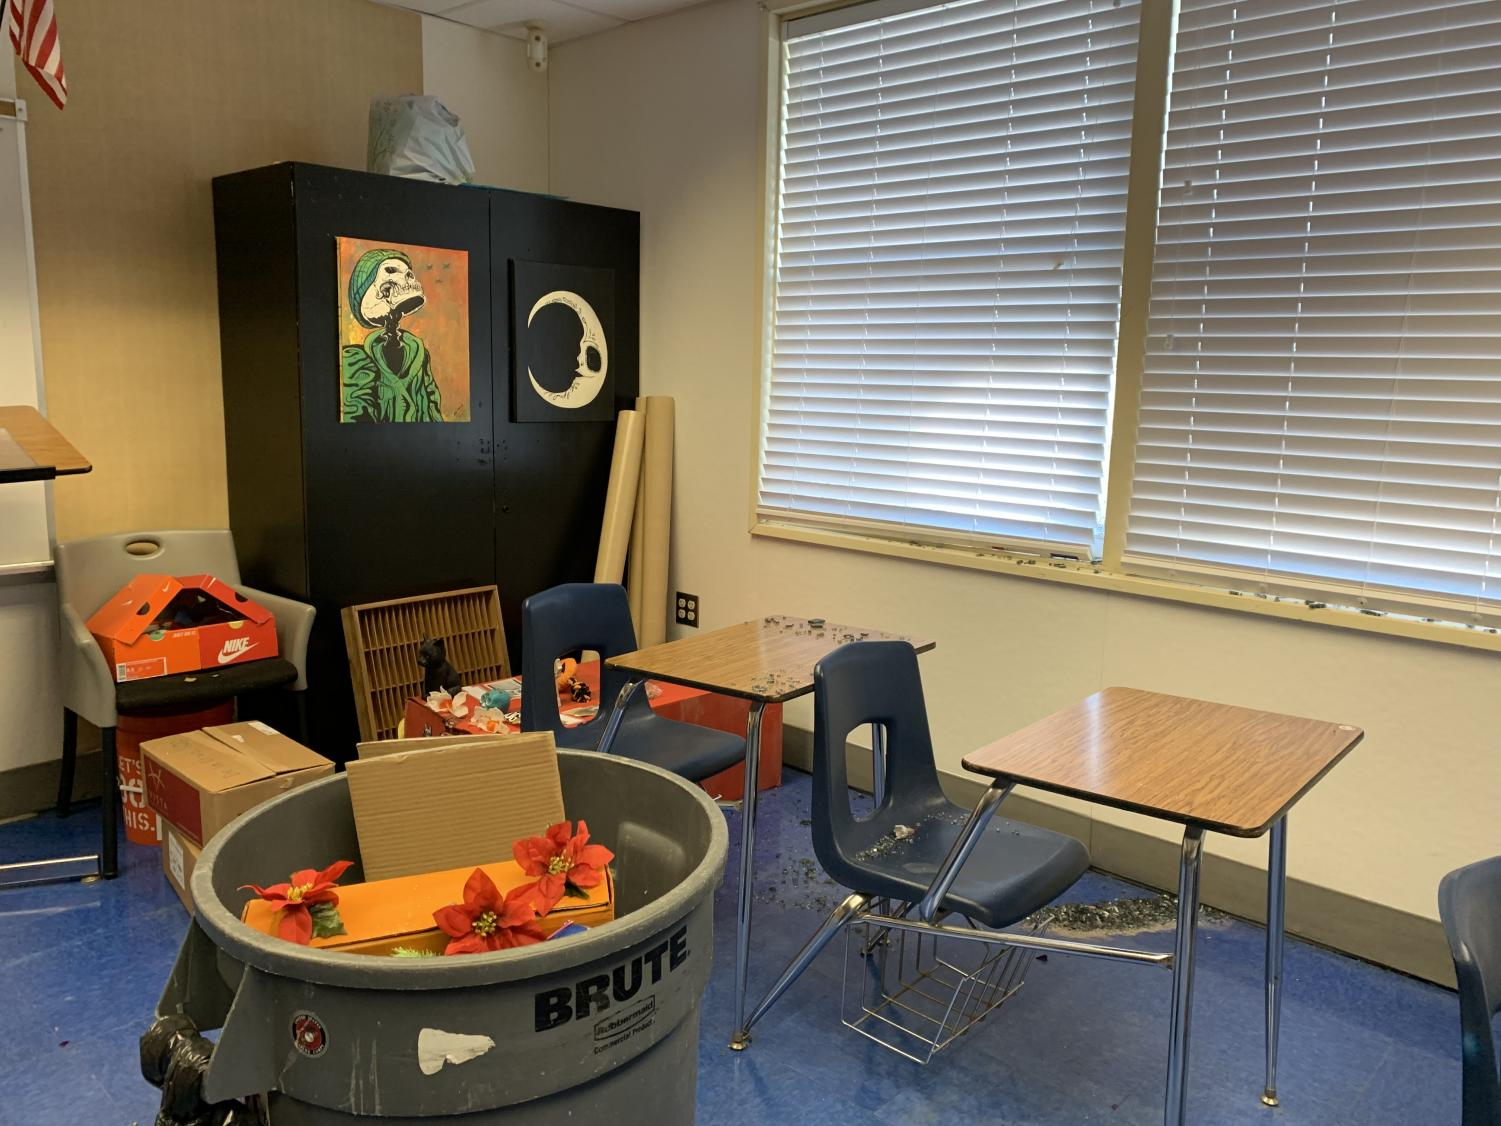 Room 802 as discovered by de la Cruz the morning of Nov. 4, 2019. In the trash bin is a student altar thrown away due to damage from the shattered glass.